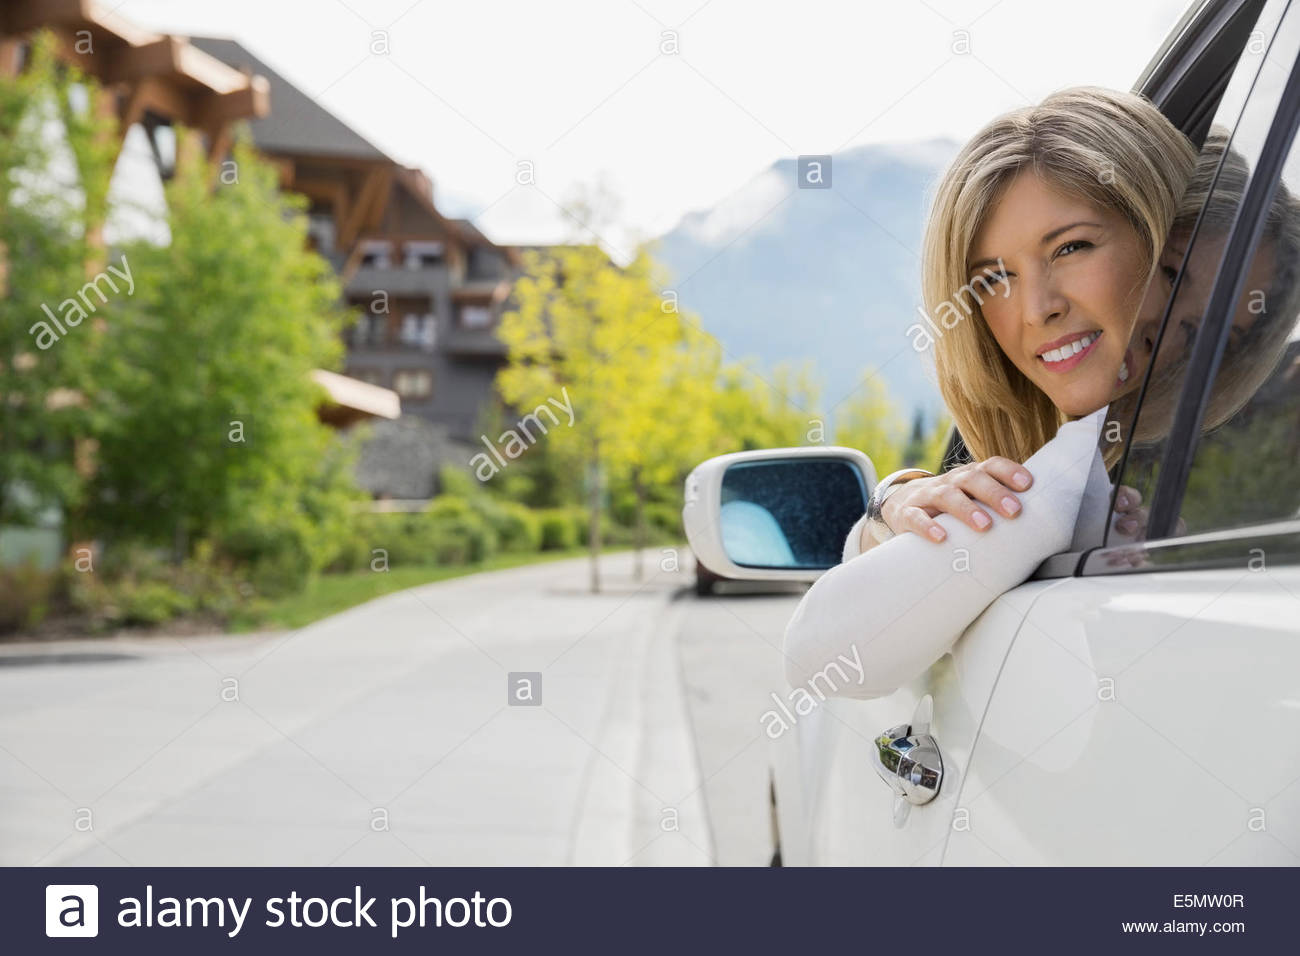 Portrait of woman in car arriving at hotel - Stock Image